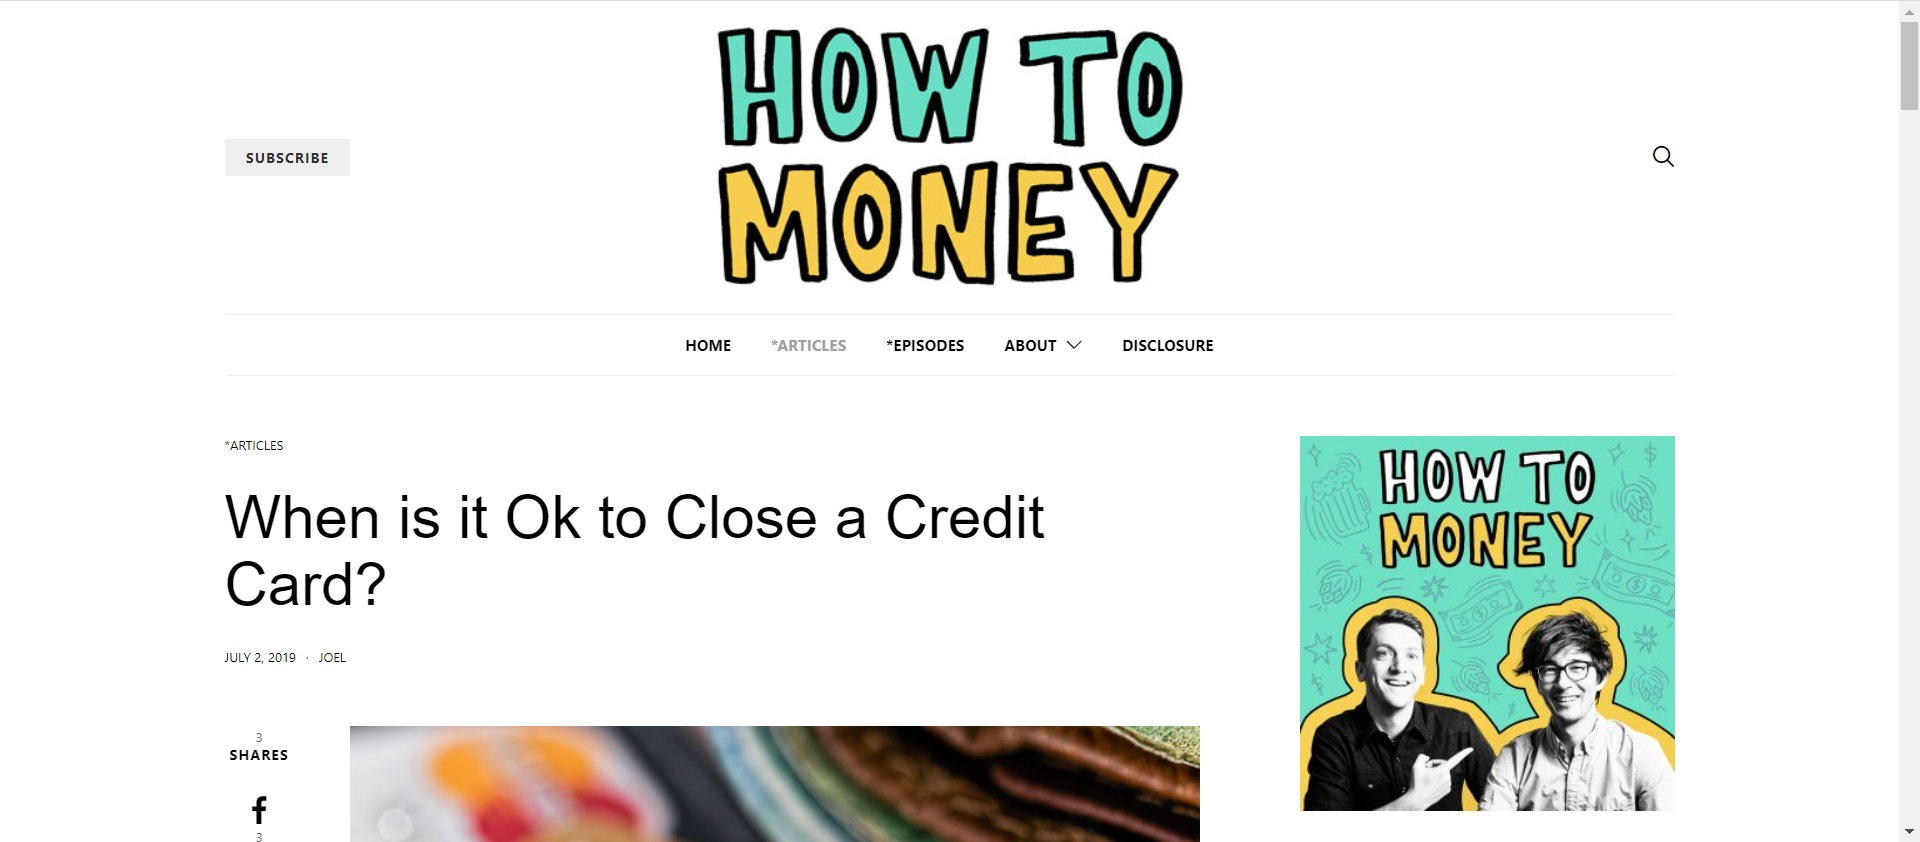 How to Money Closing Credit Cards